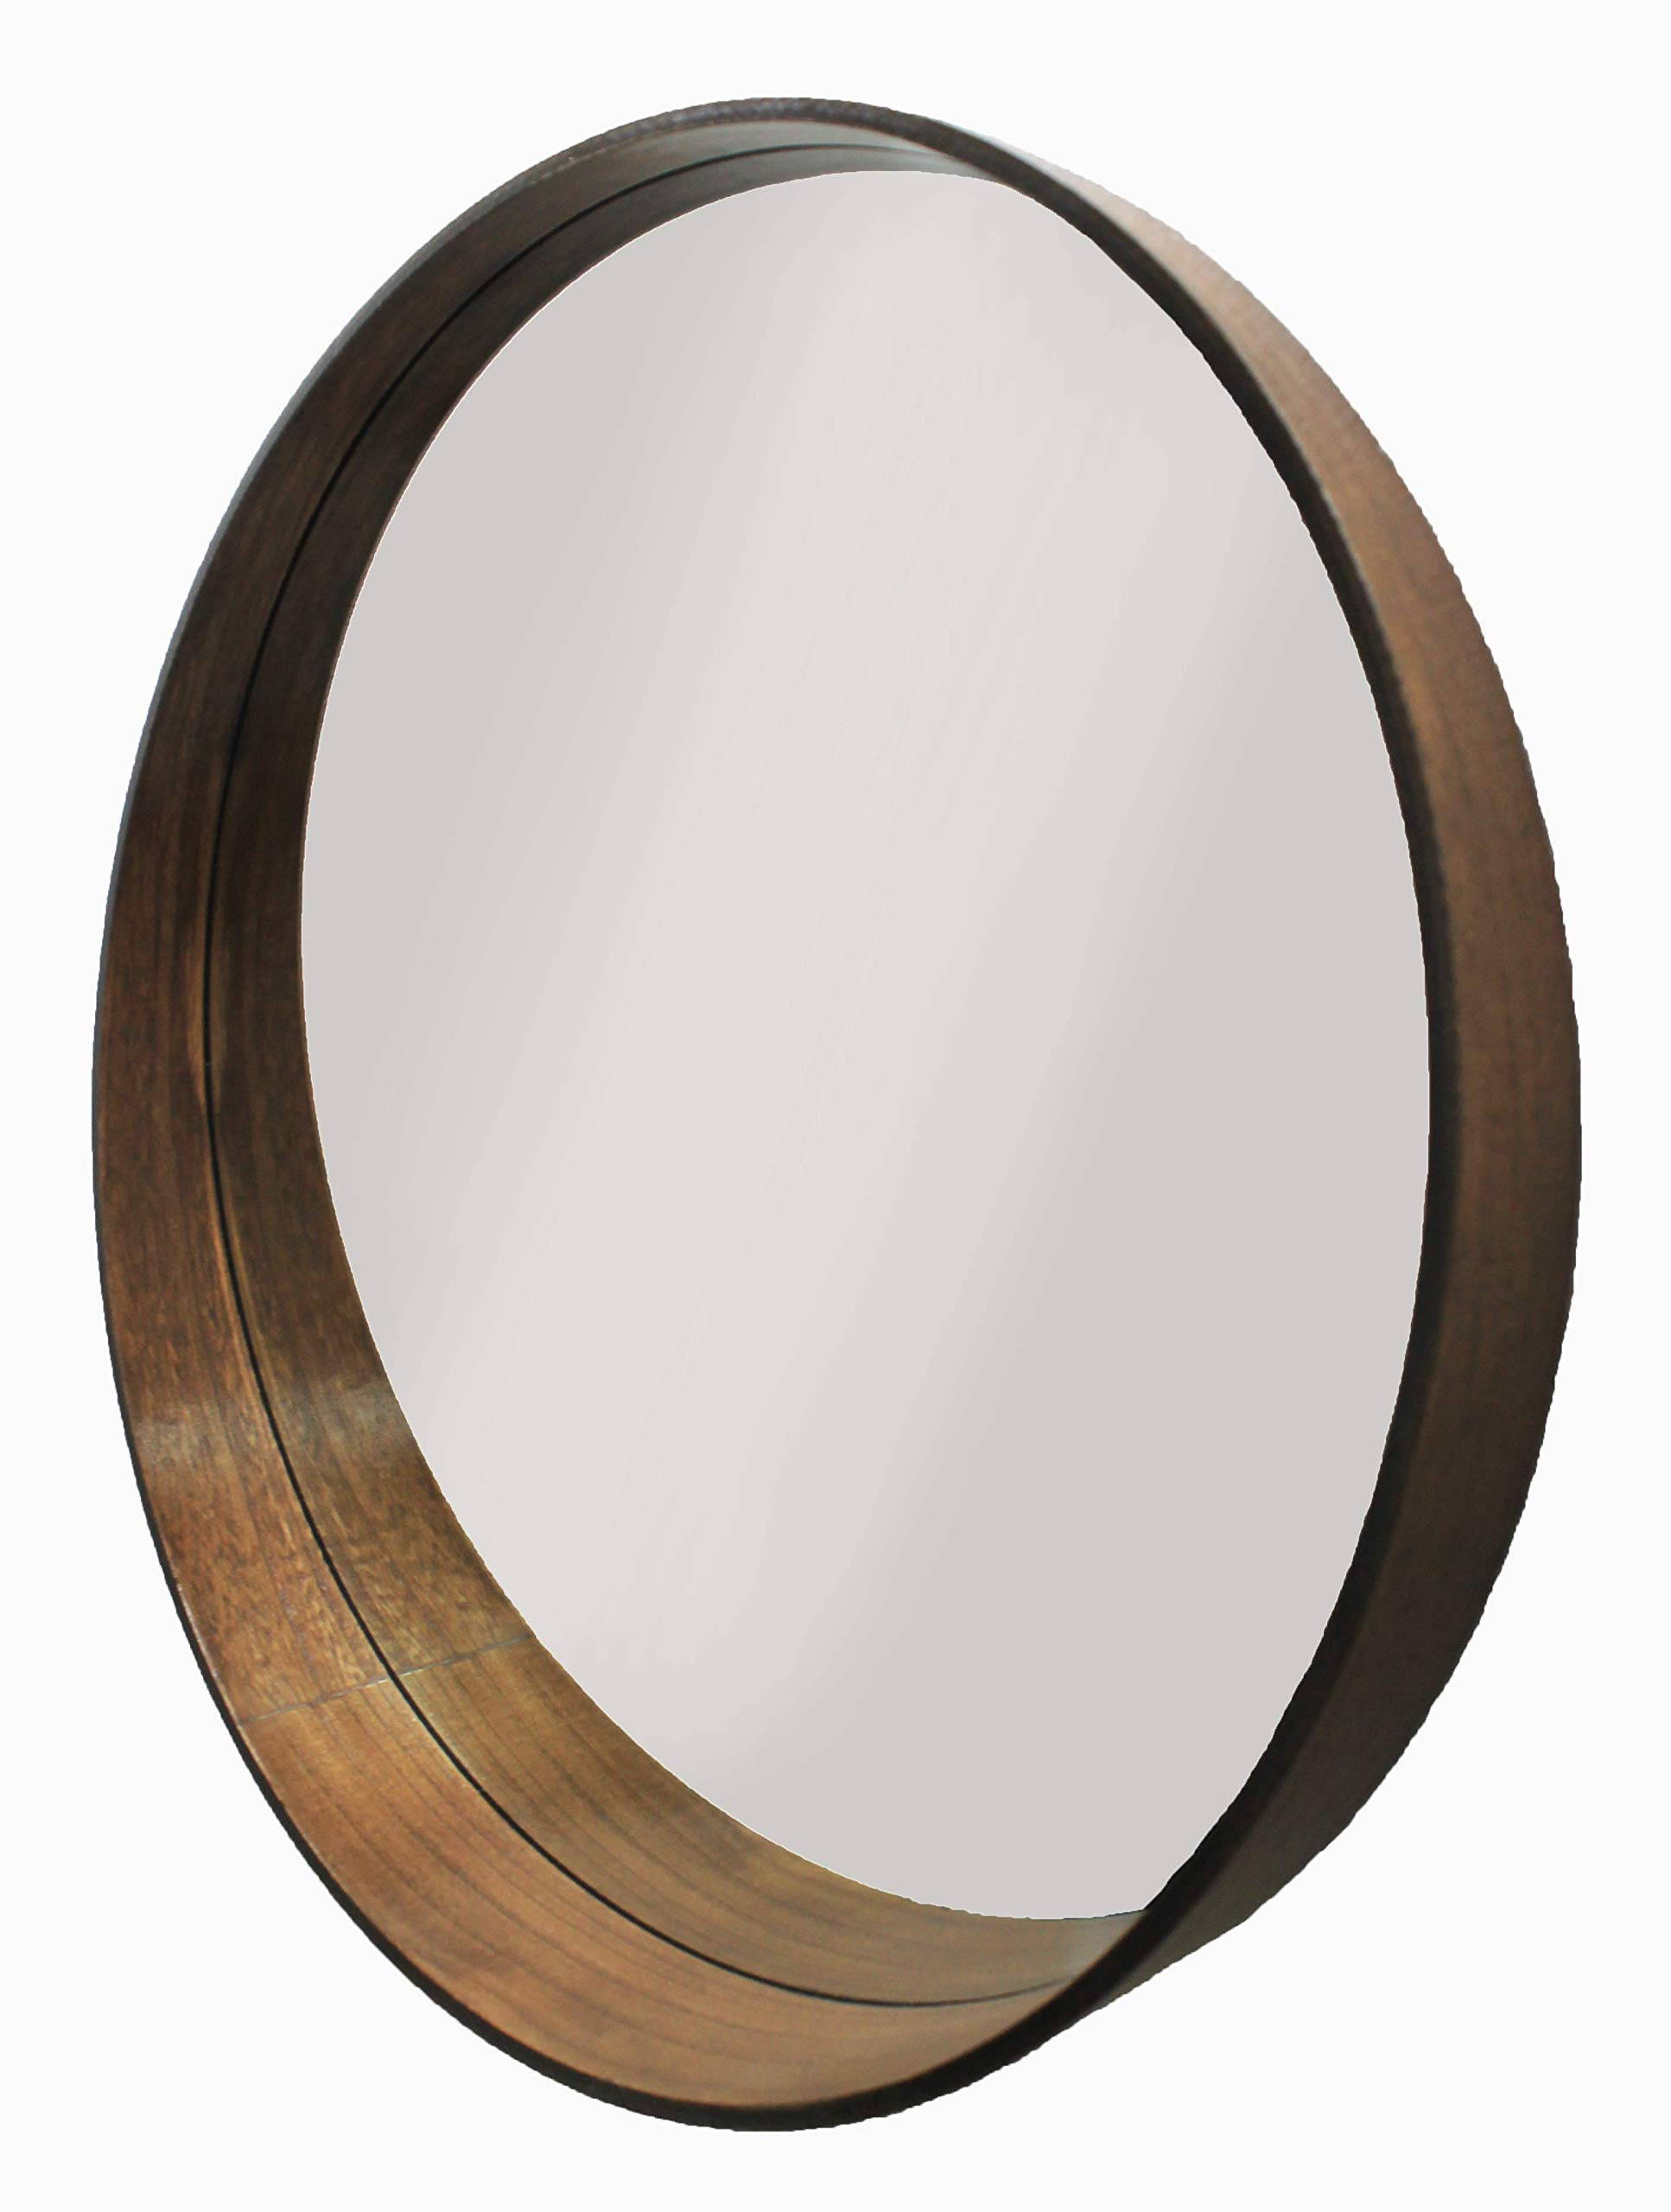 Modern Living Home Round Wood Mirror With Wide Bottom Lip Circle Mirrors Wall Decor For Bathroom Large Wooden Frame Round Farmhouse Mirror For Threshold Vanity Accent Dark Wood 24 Inch